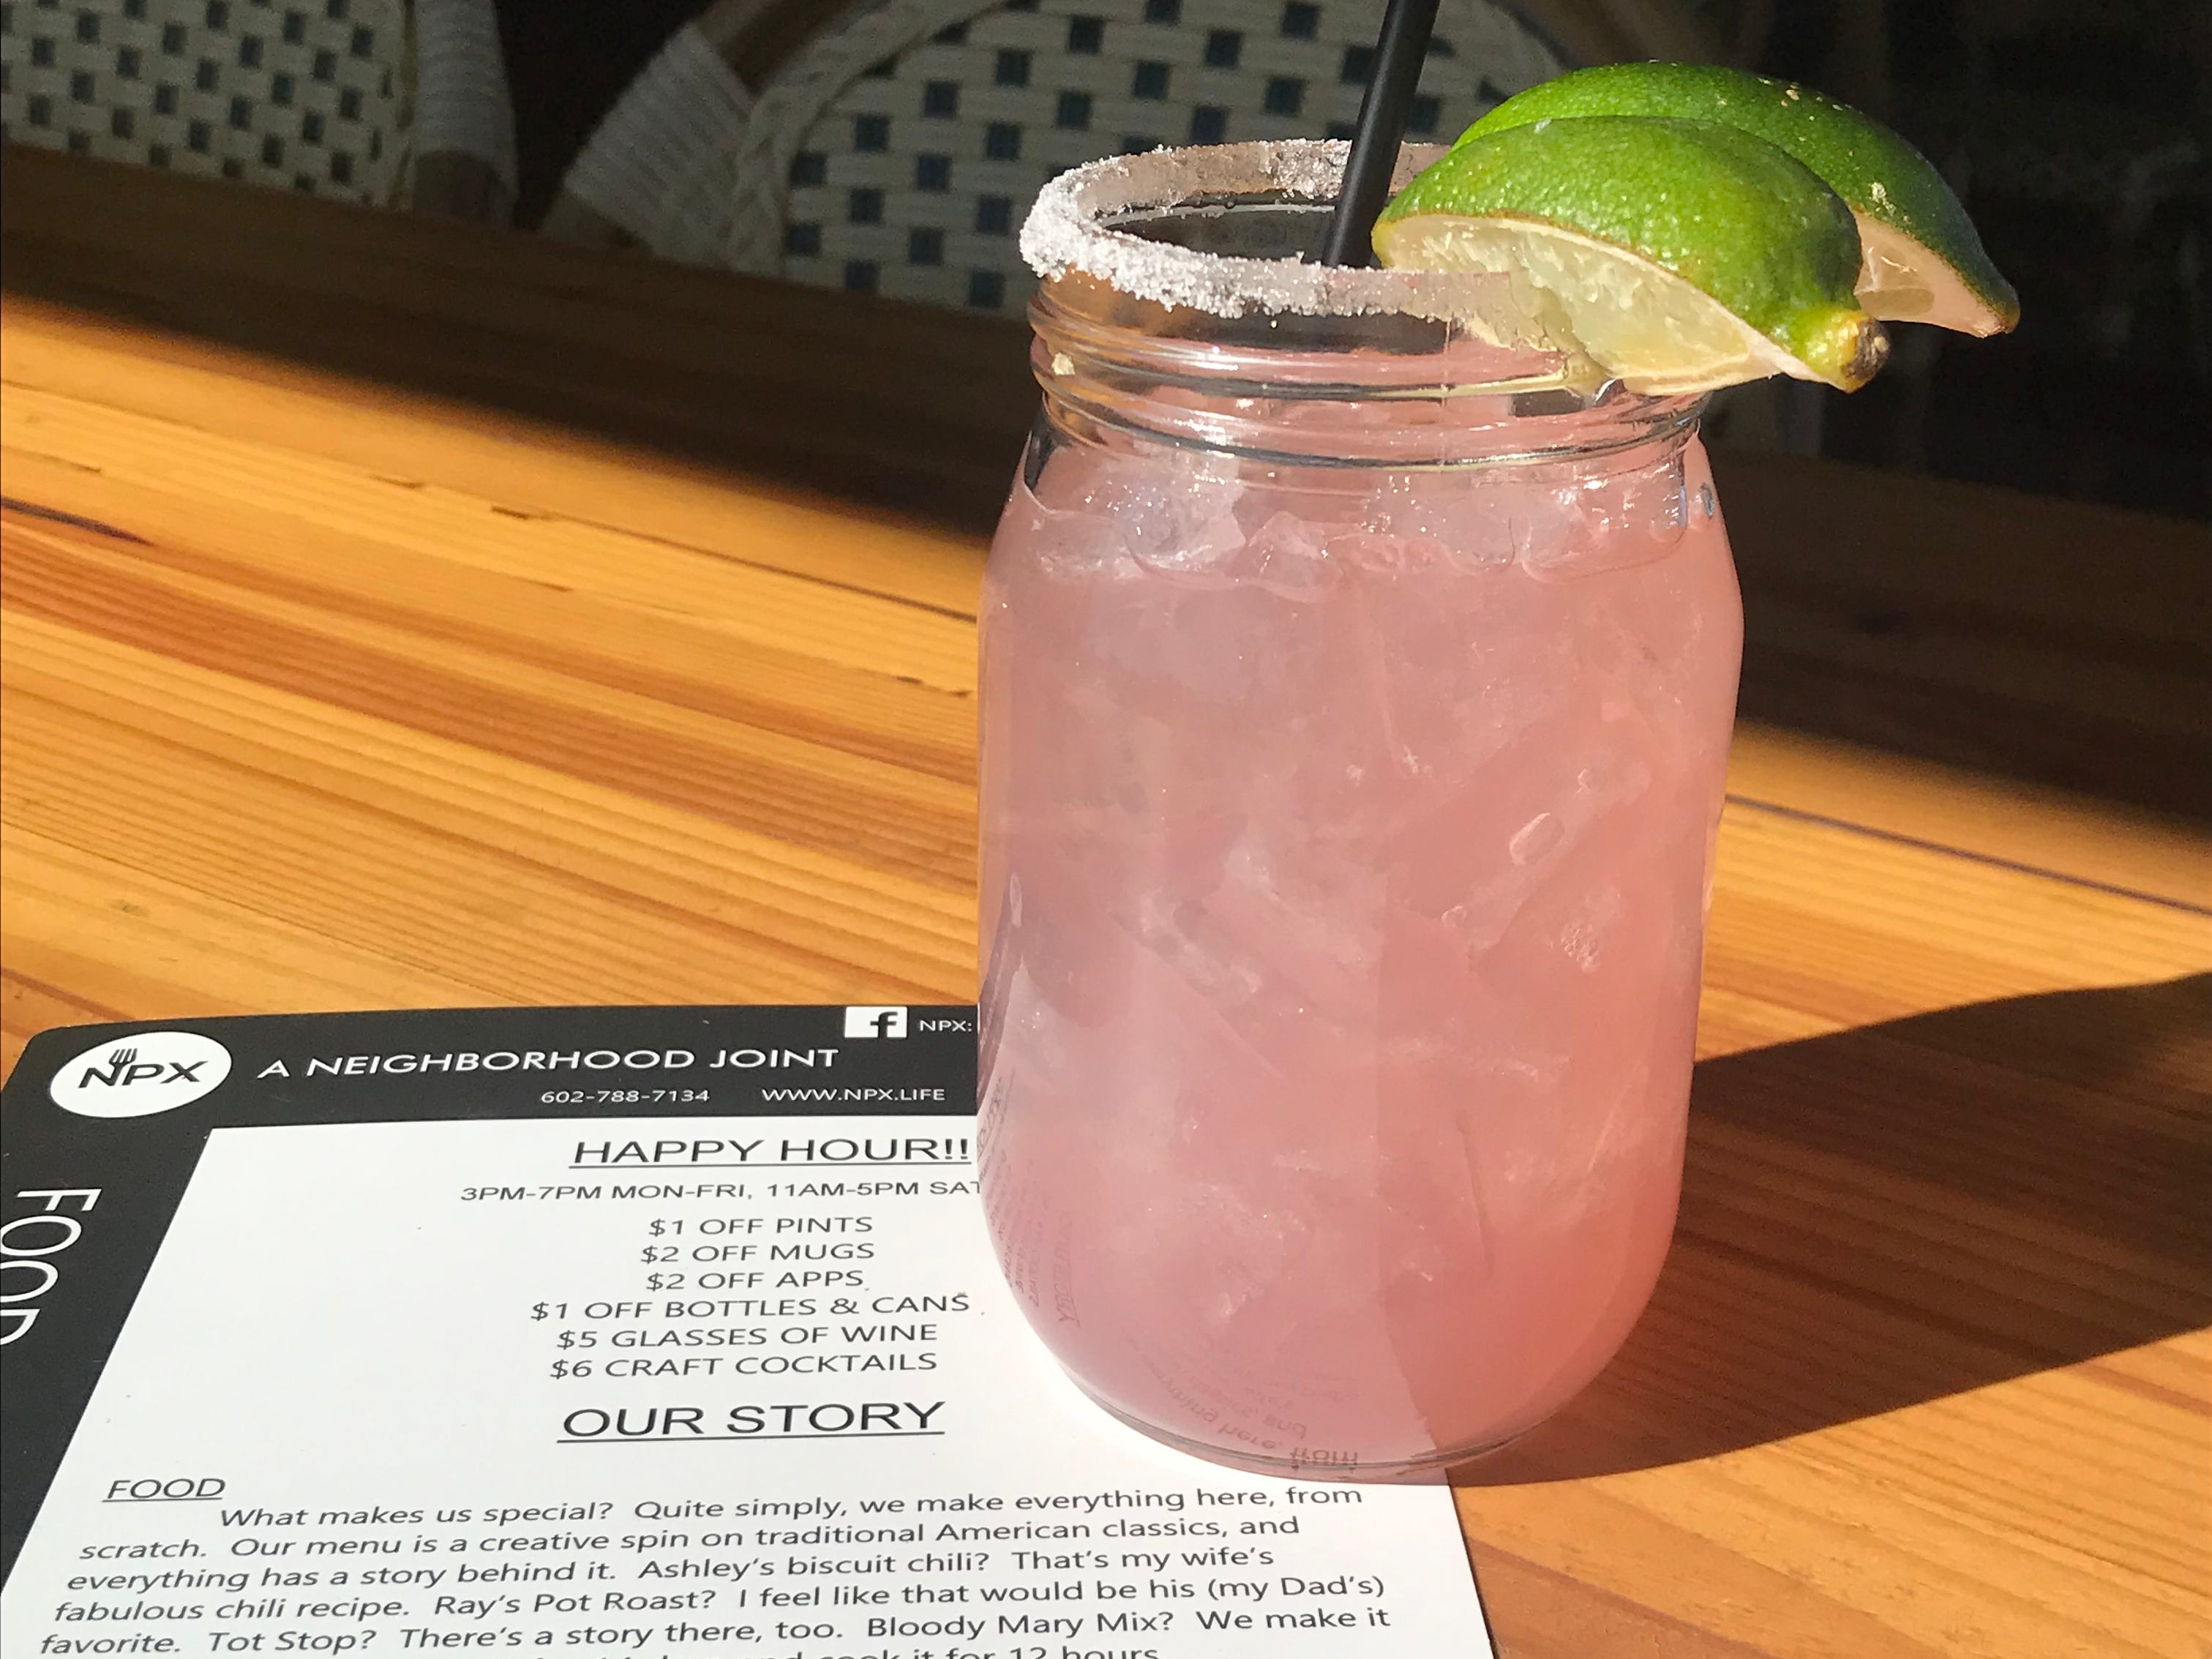 NPX — A Neighborhood Joint's prickly pear margarita.